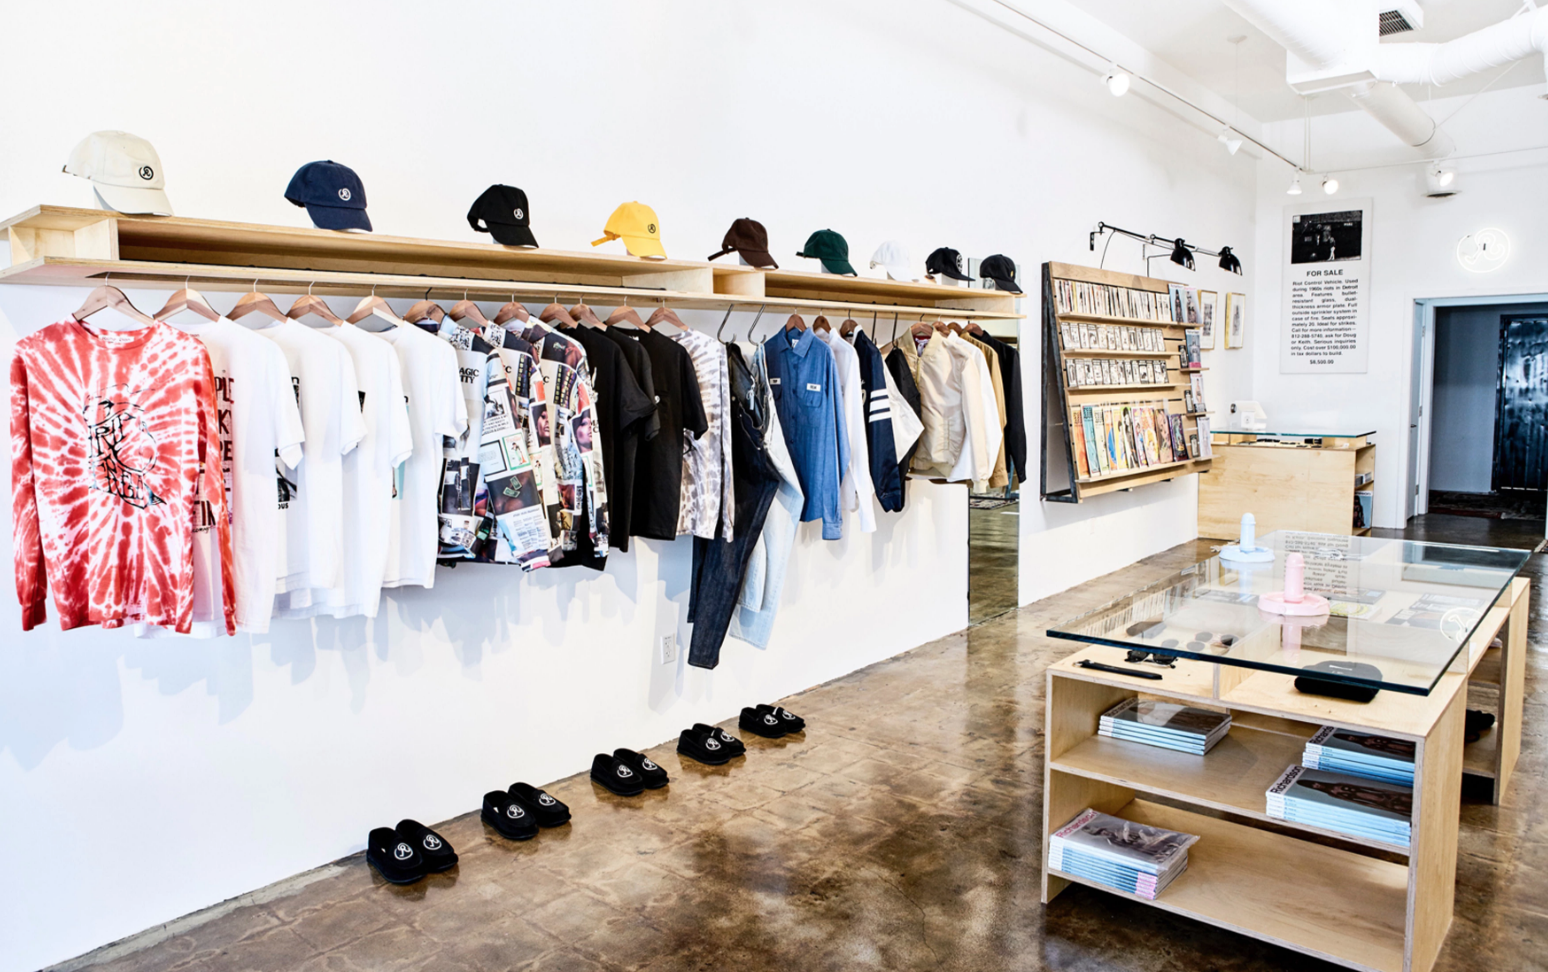 Richardson - Richardson is a a high-end boutique with a provocative mix of streetwear.https://www.richardsonshop.com/📍8044.5 West 3rd St, Los Angeles, CA 90048